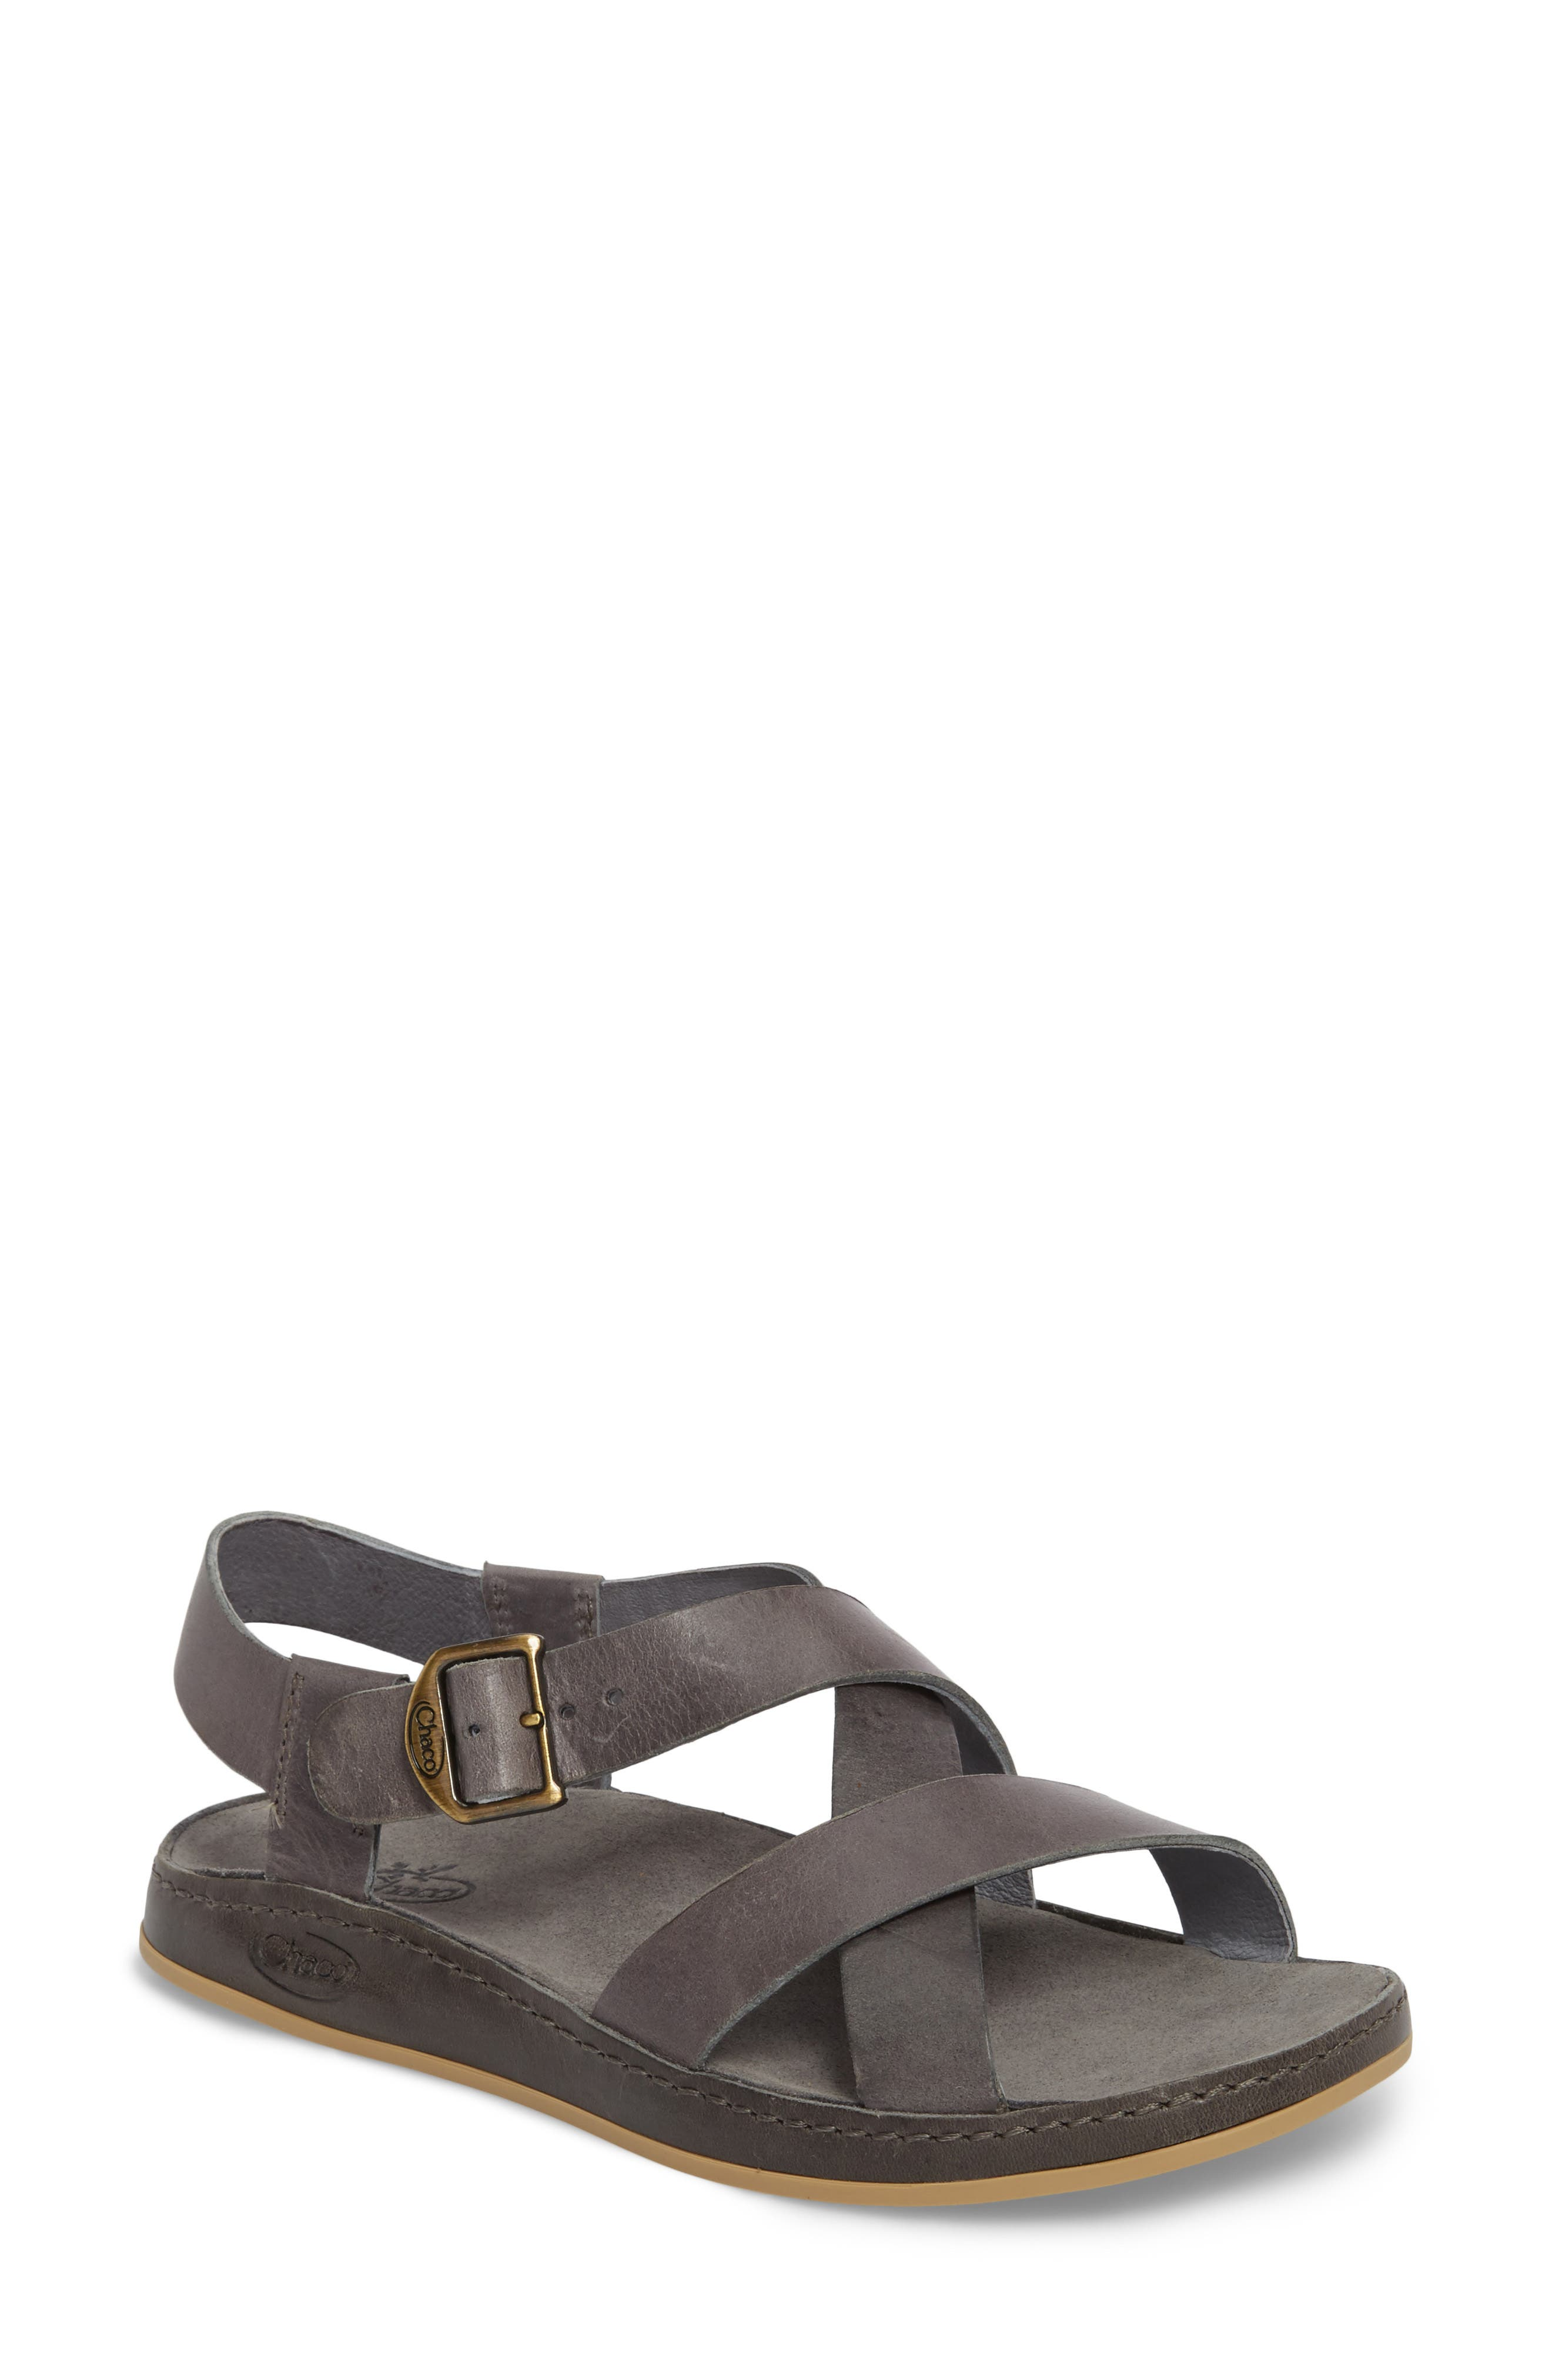 Strappy Sandal,                             Main thumbnail 1, color,                             GREY LEATHER